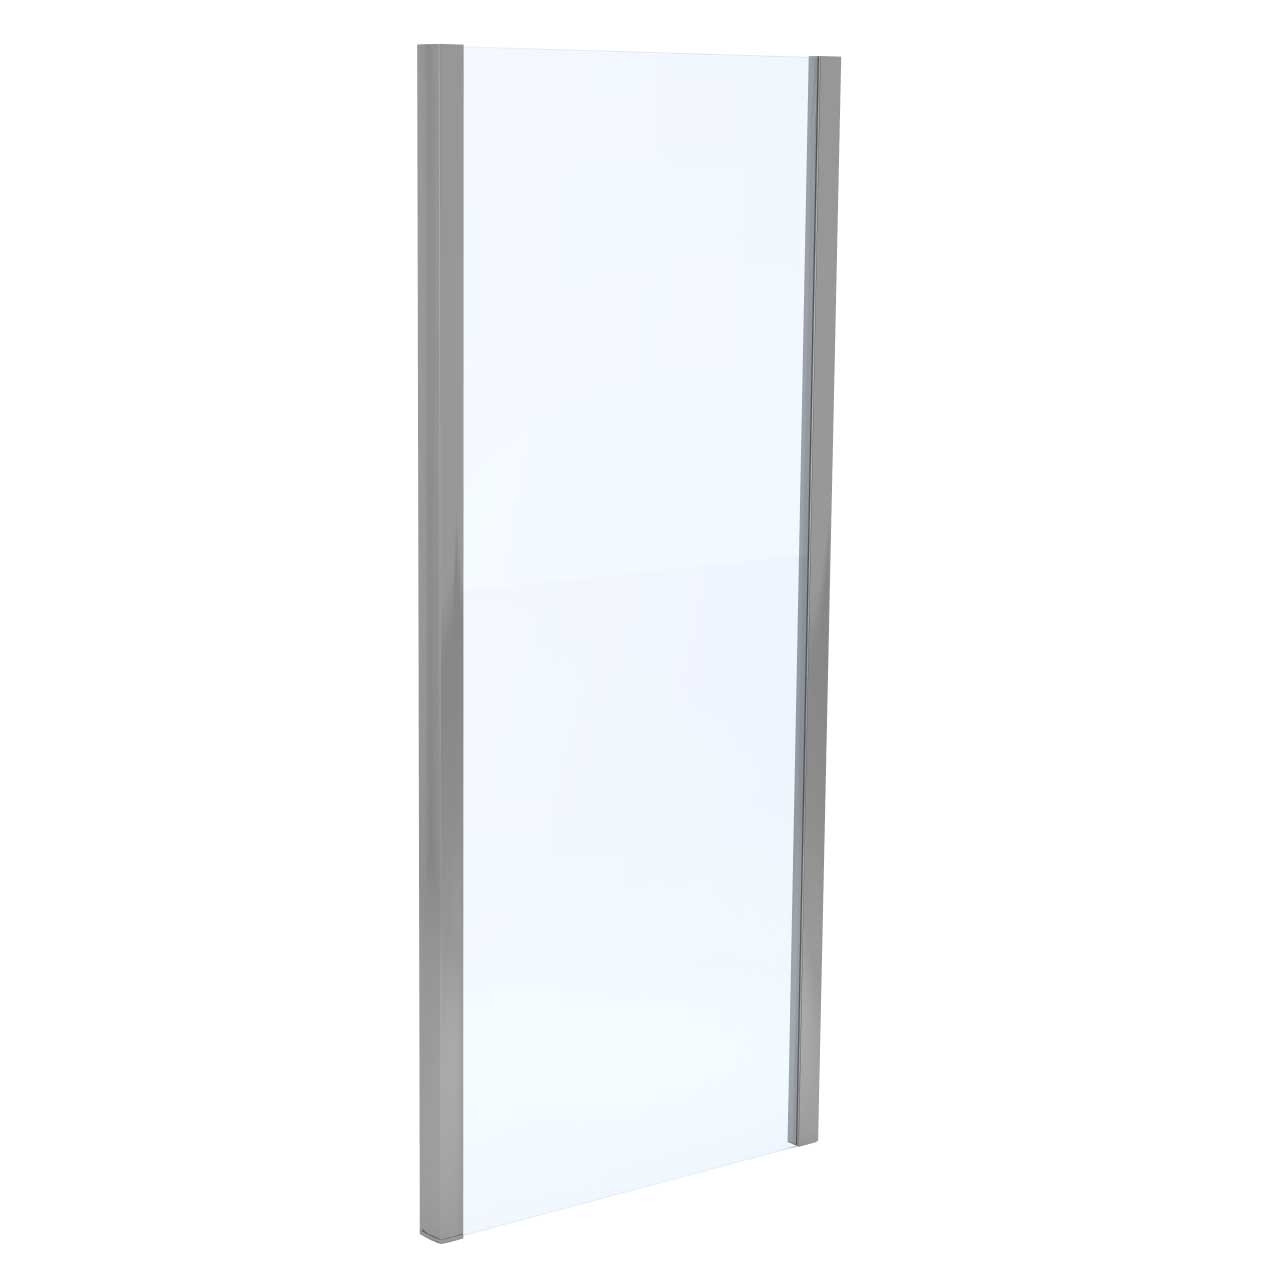 Series 6 1400mm x 800mm Double Sliding Door Shower Enclosure